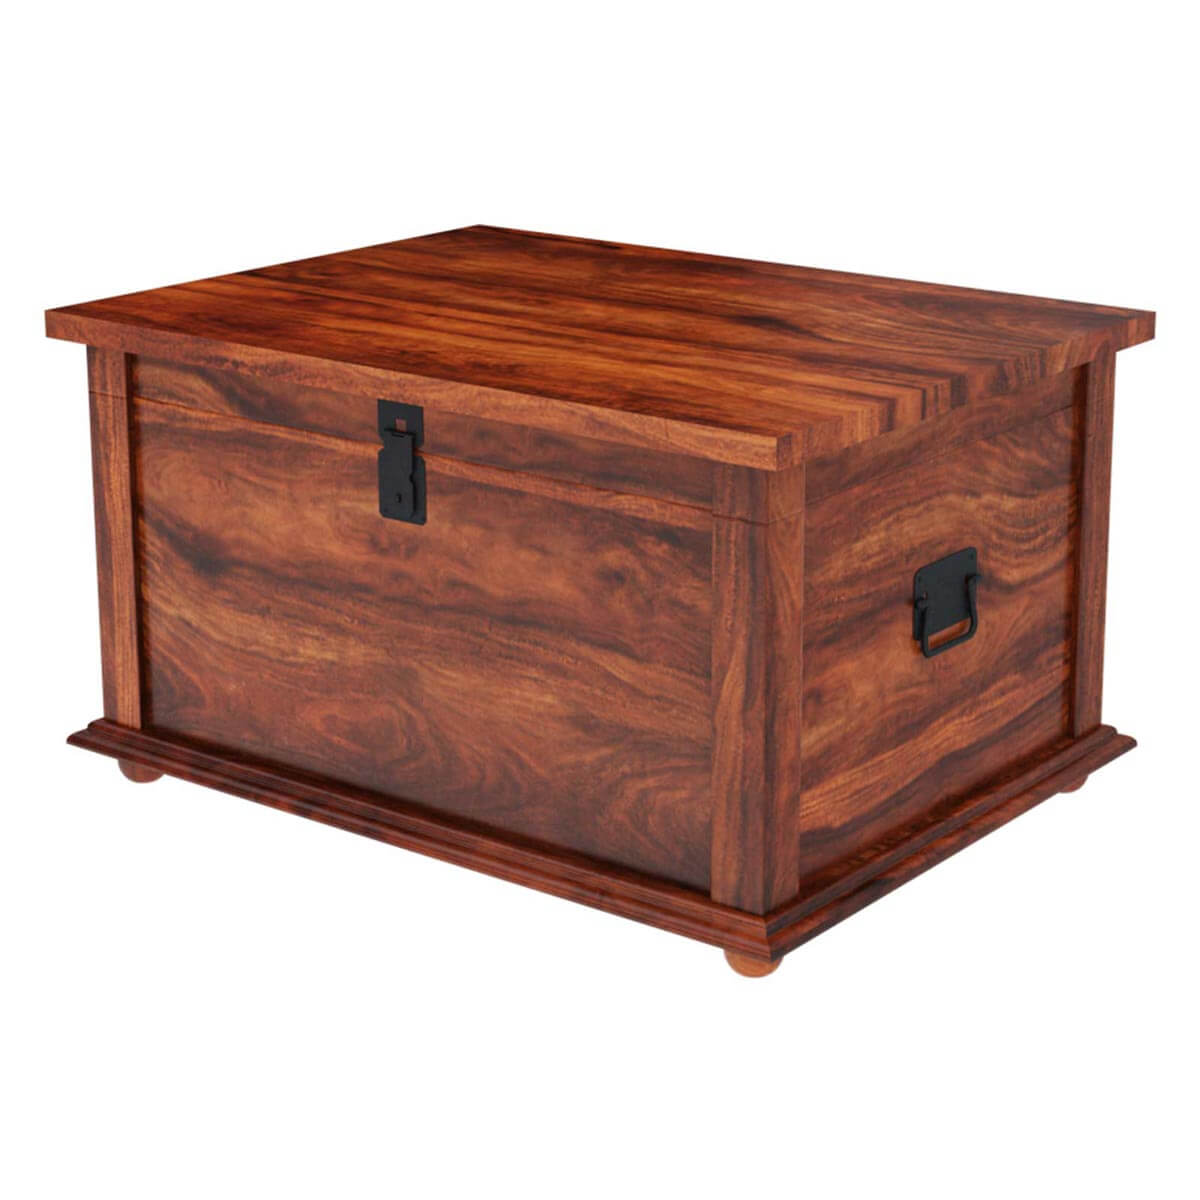 Rustic primitive solid wood storage trunk coffee table new Trunks coffee tables